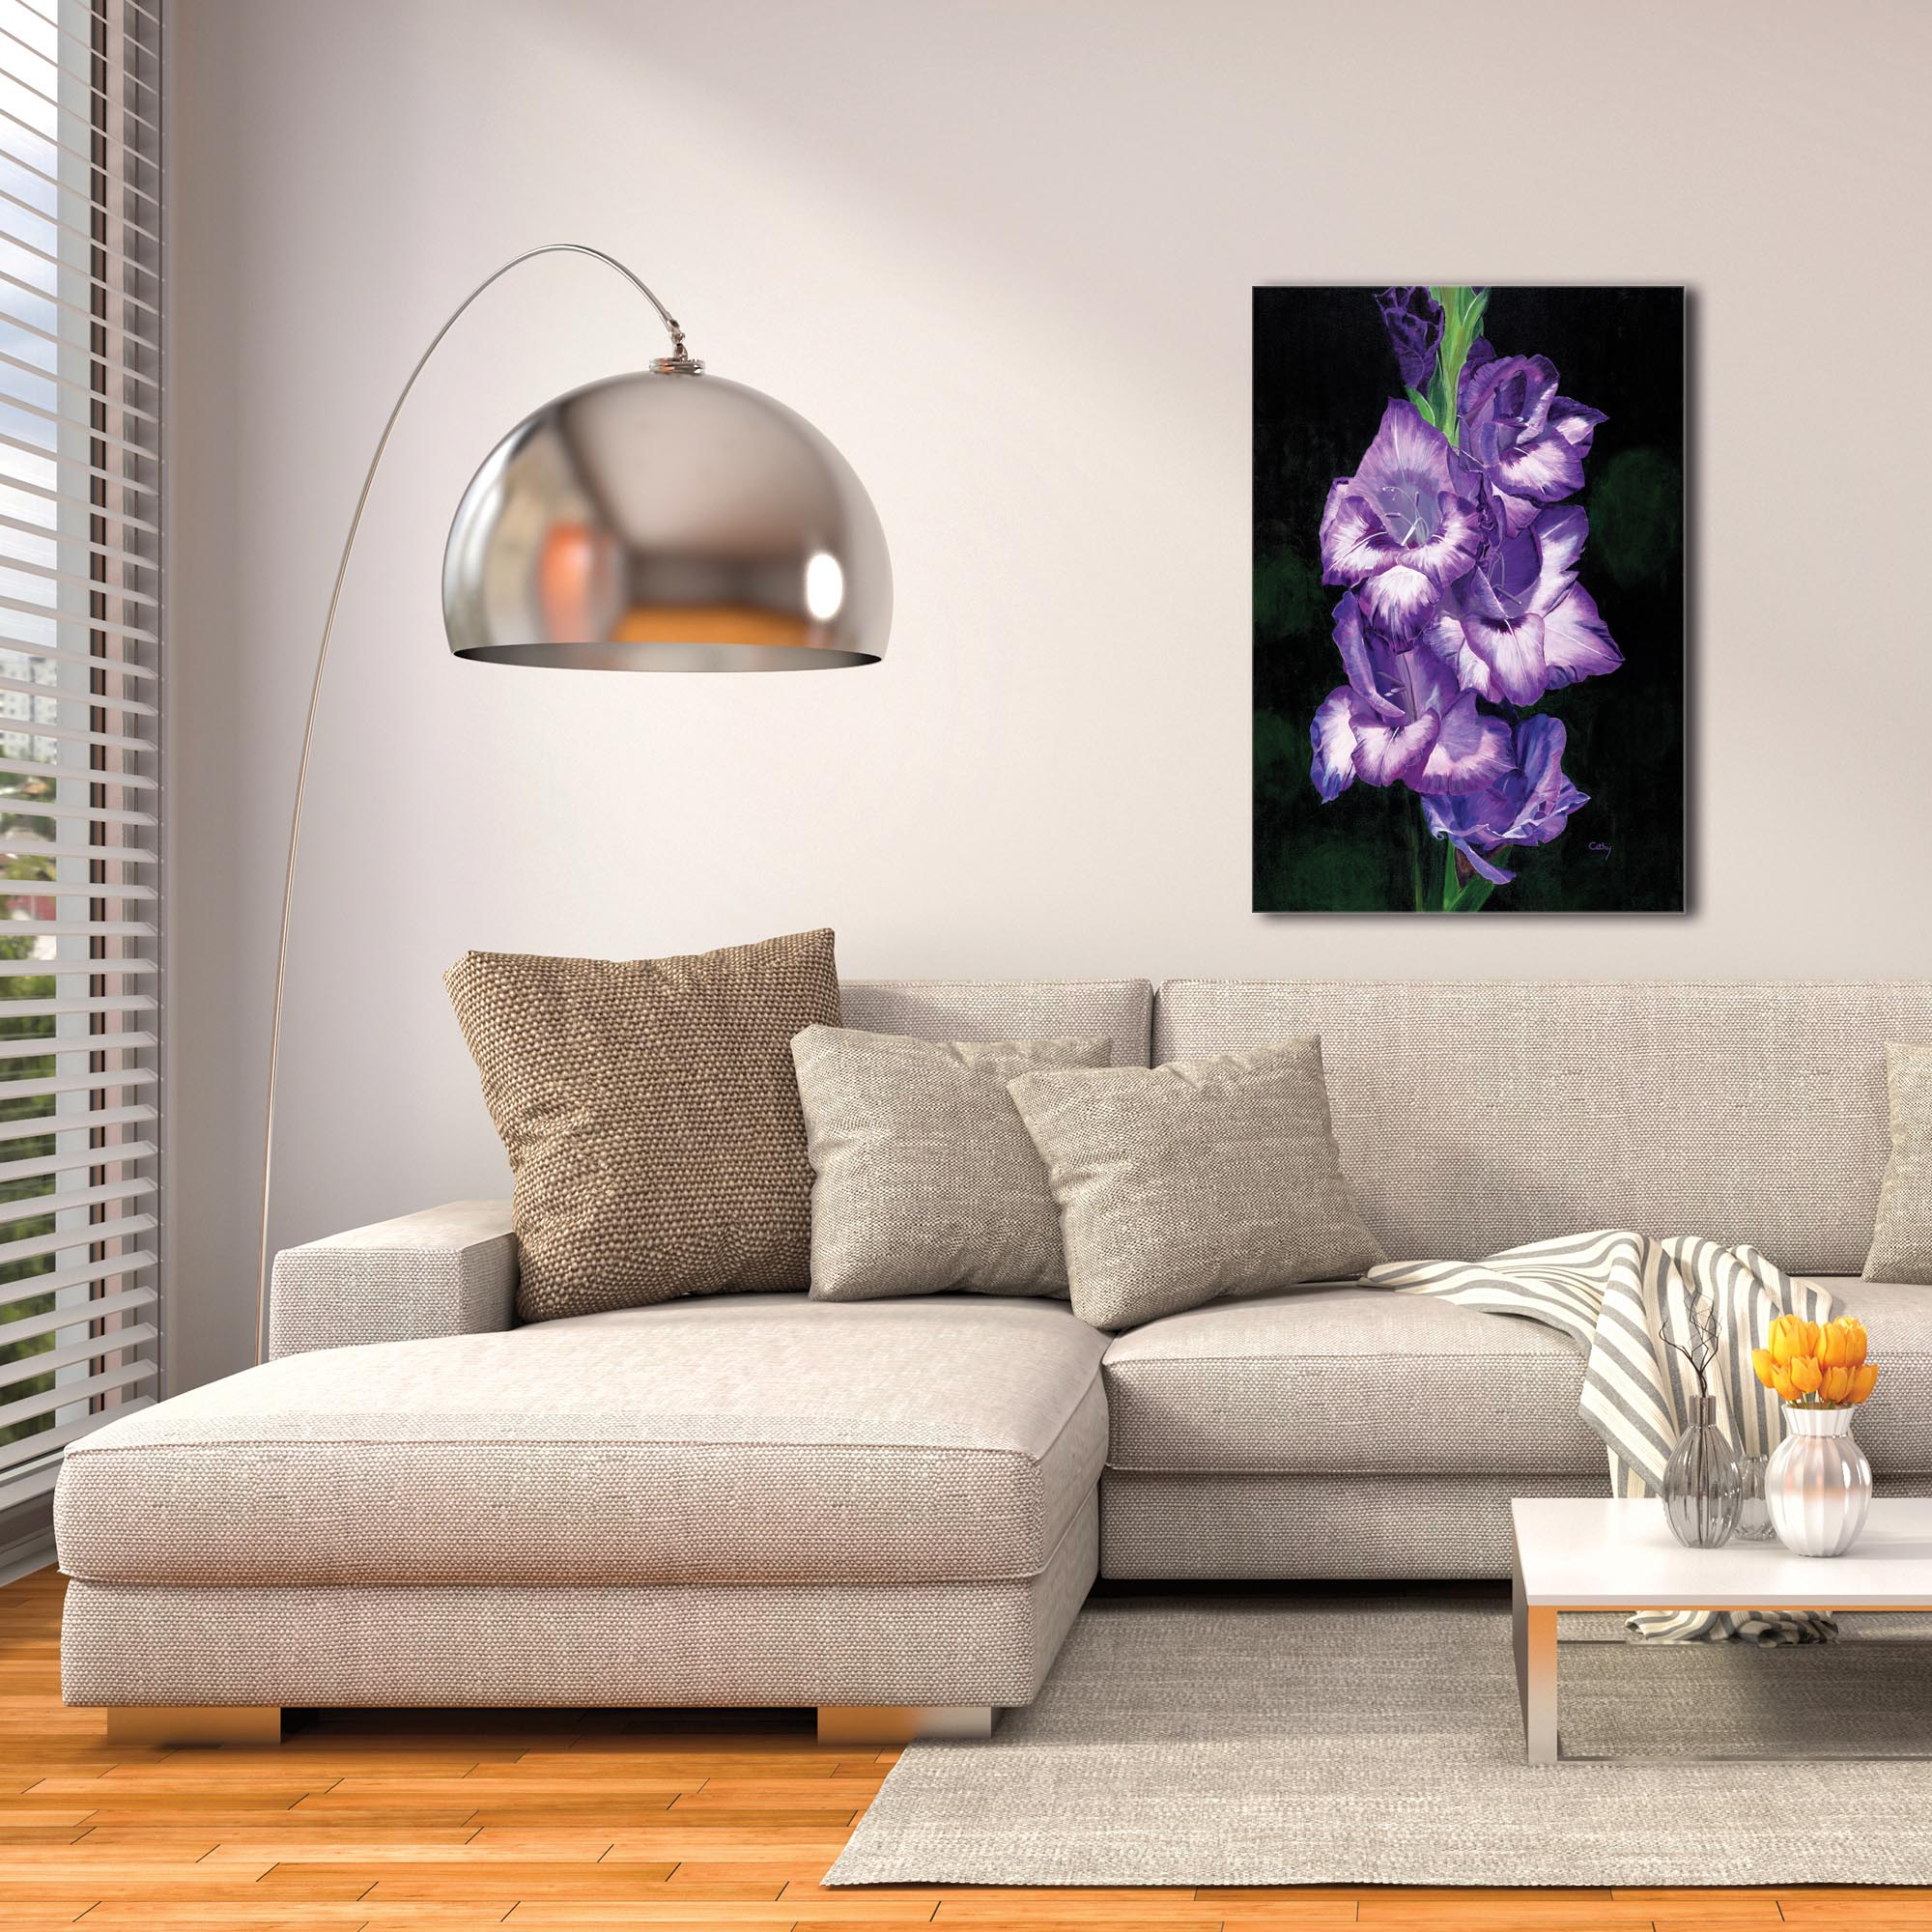 Traditional Wall Art 'Deep Purple Glads' - Floral Decor on Metal or Plexiglass - Image 3